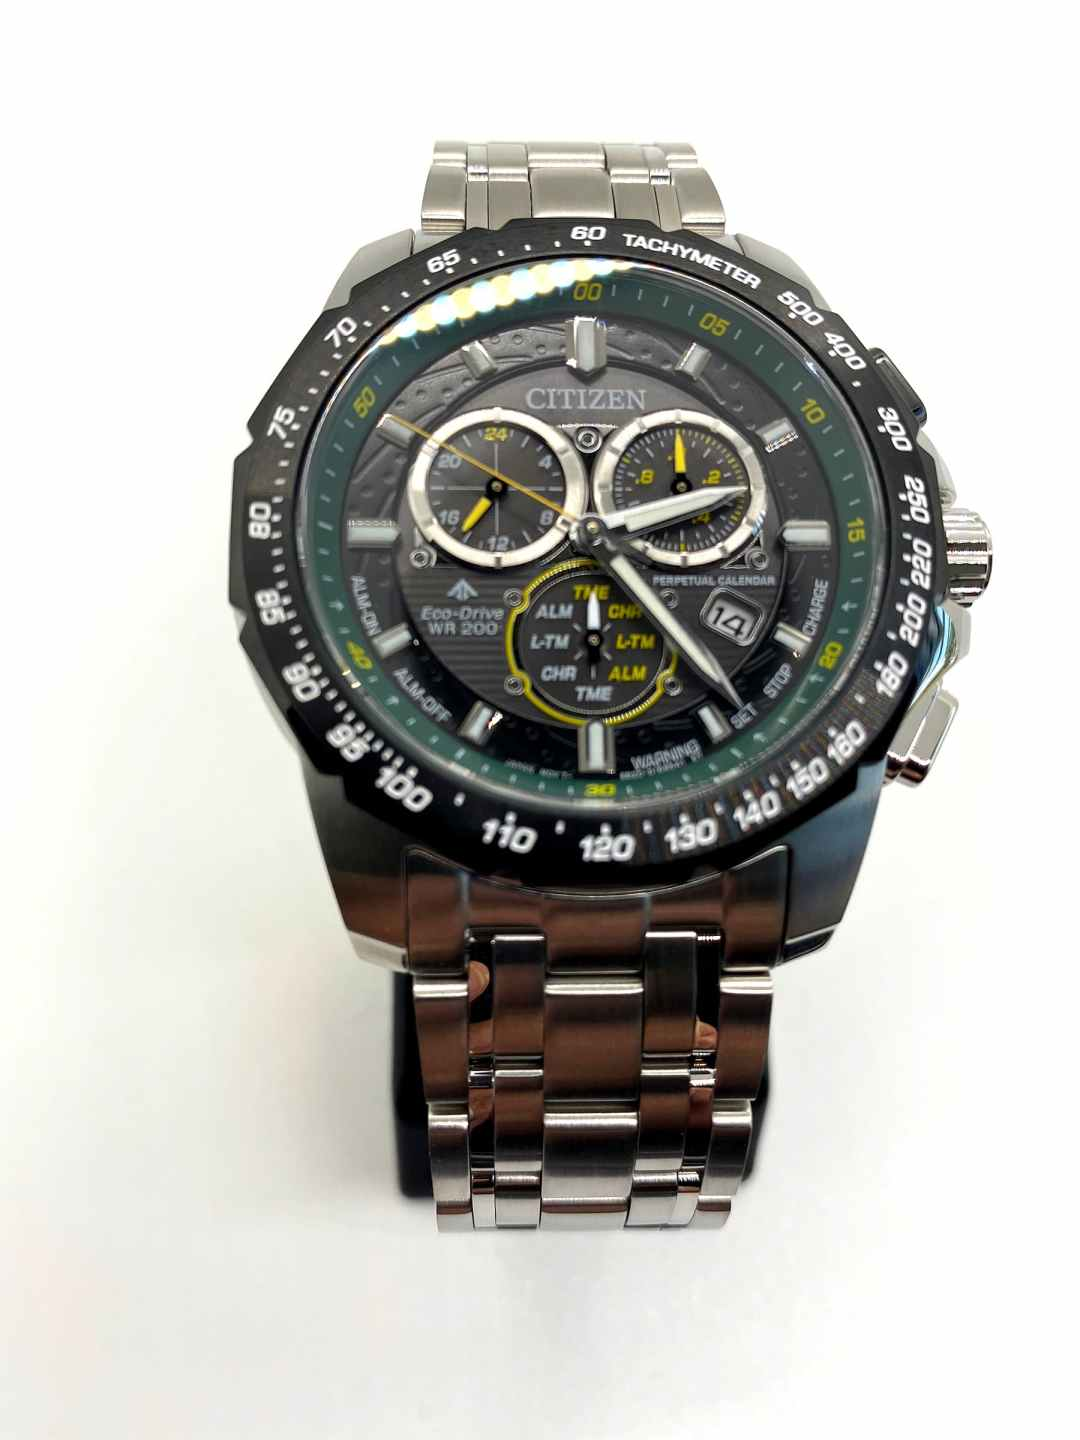 Eco Drive Promaster SS WR200 Men's Citizen Watch